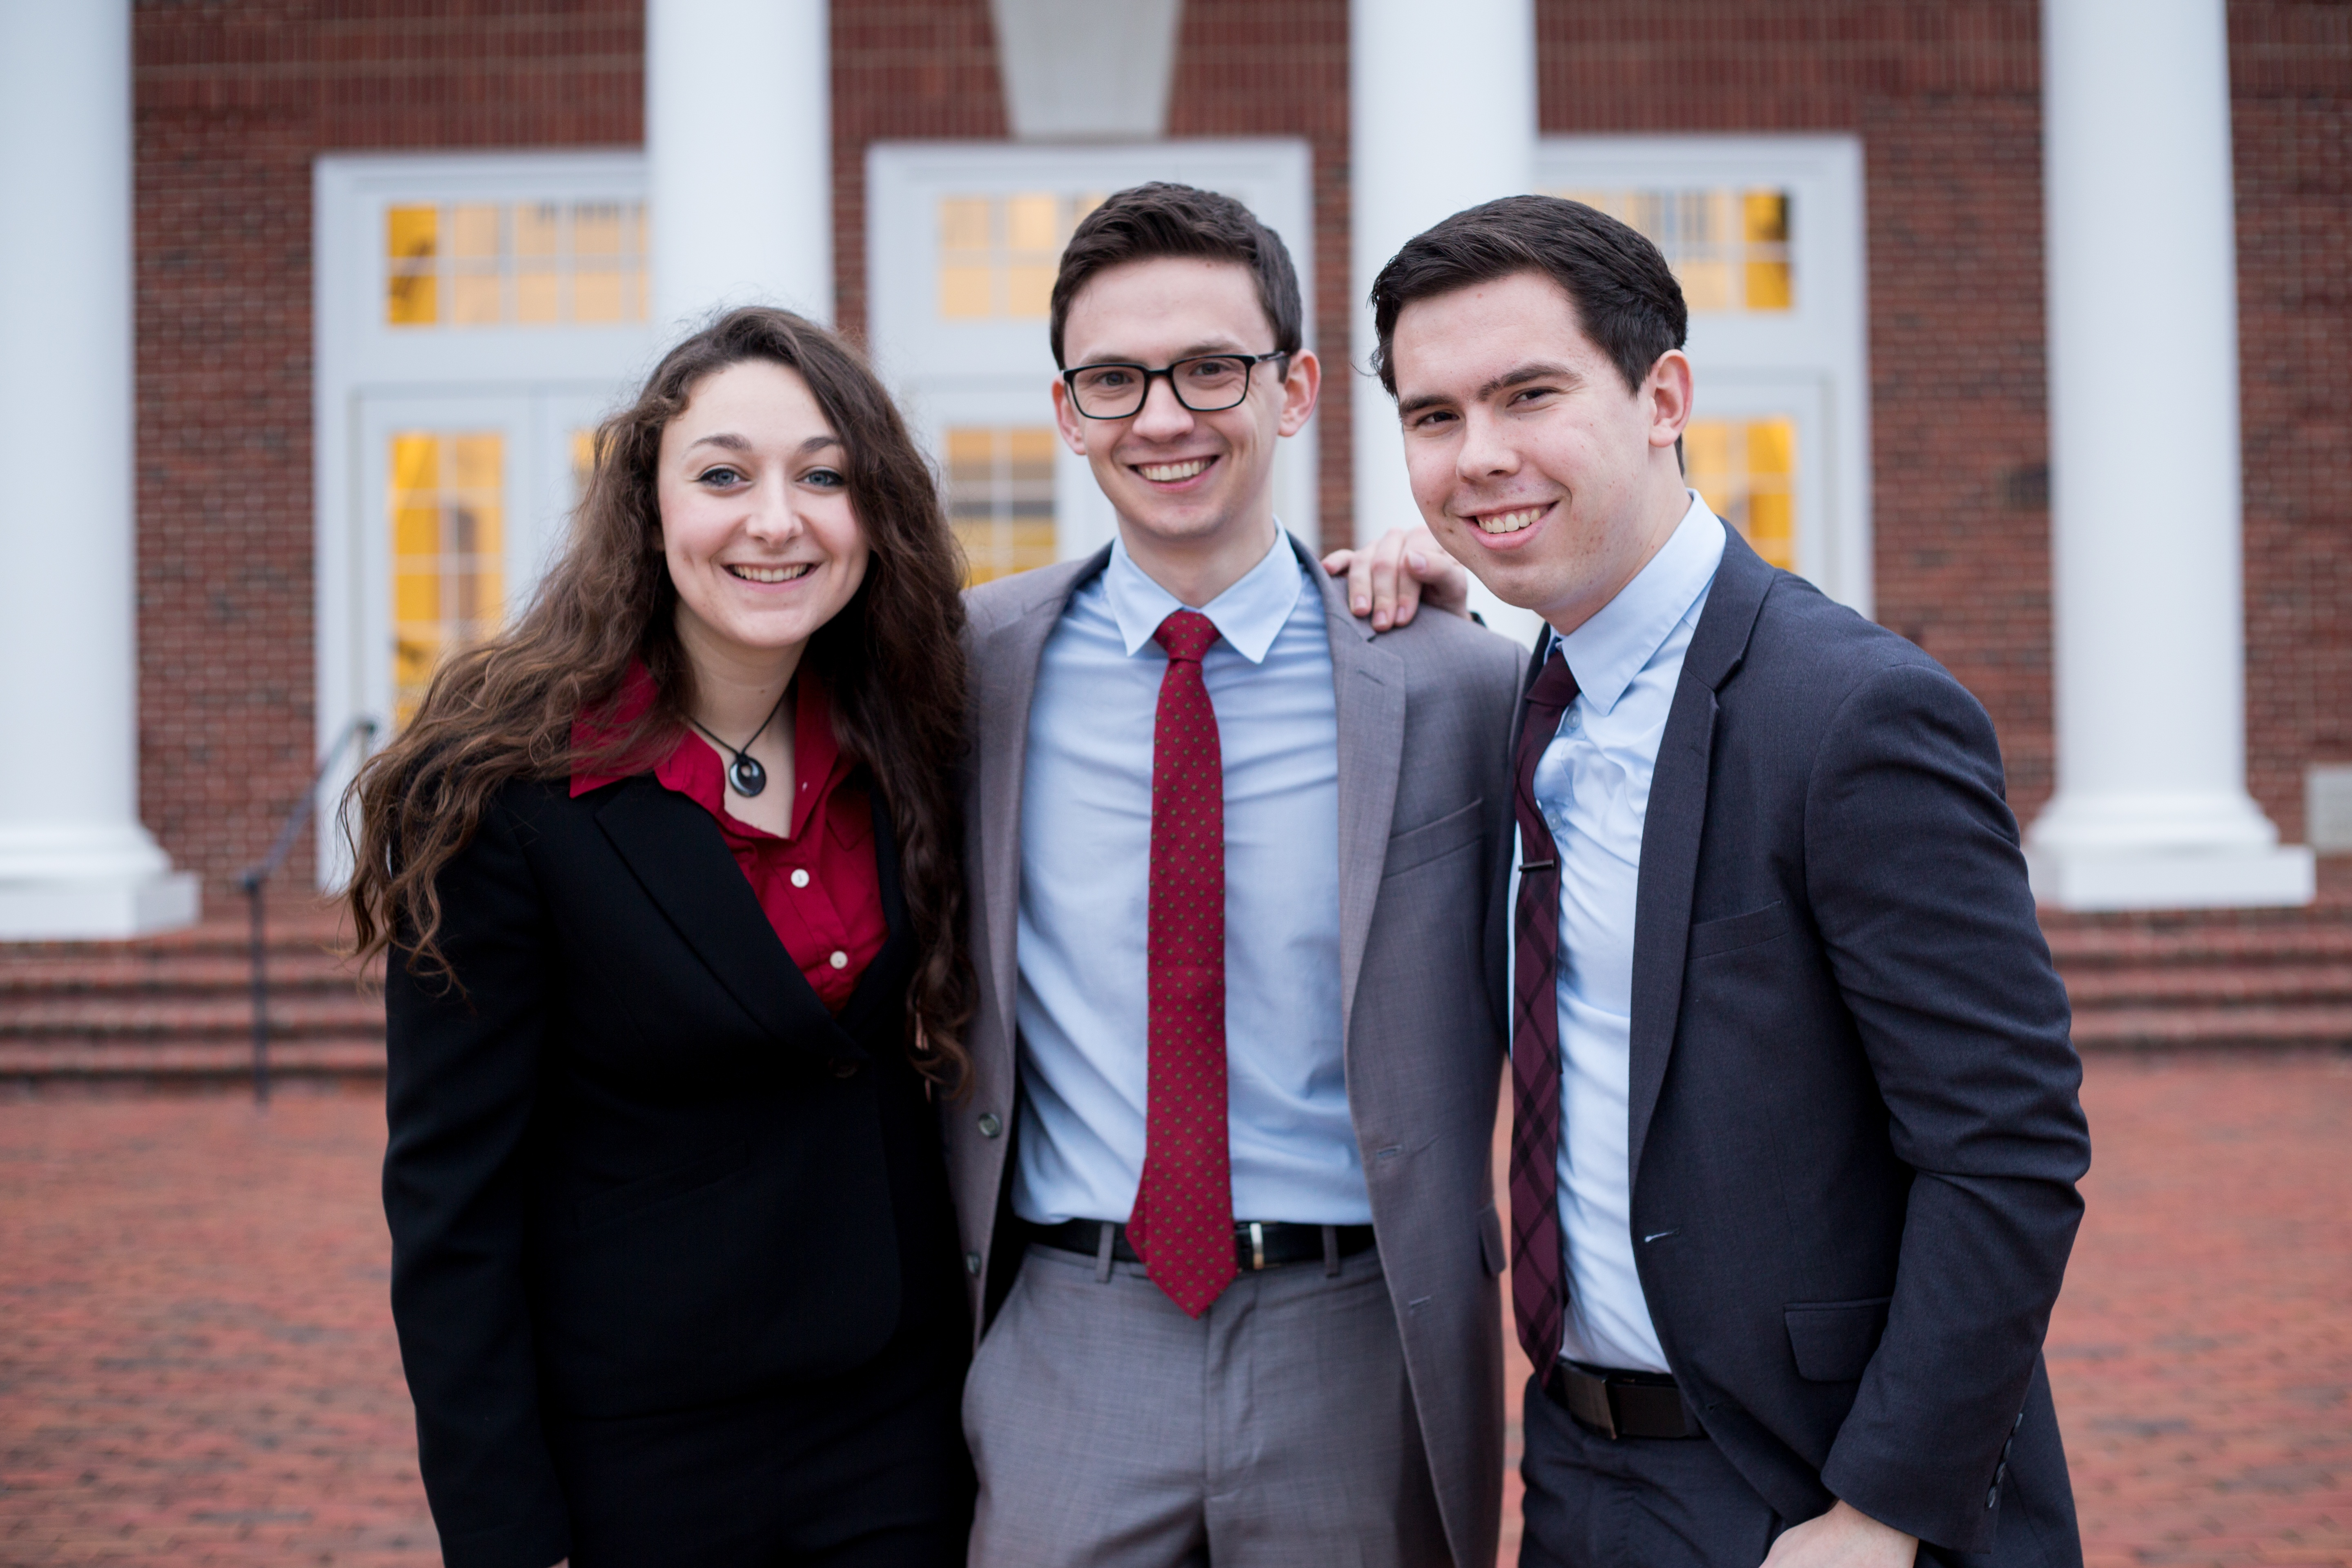 Patrick Henry College (PHC) students Sarah Geesaman, Christian McGuire, and Keith Zimmerman